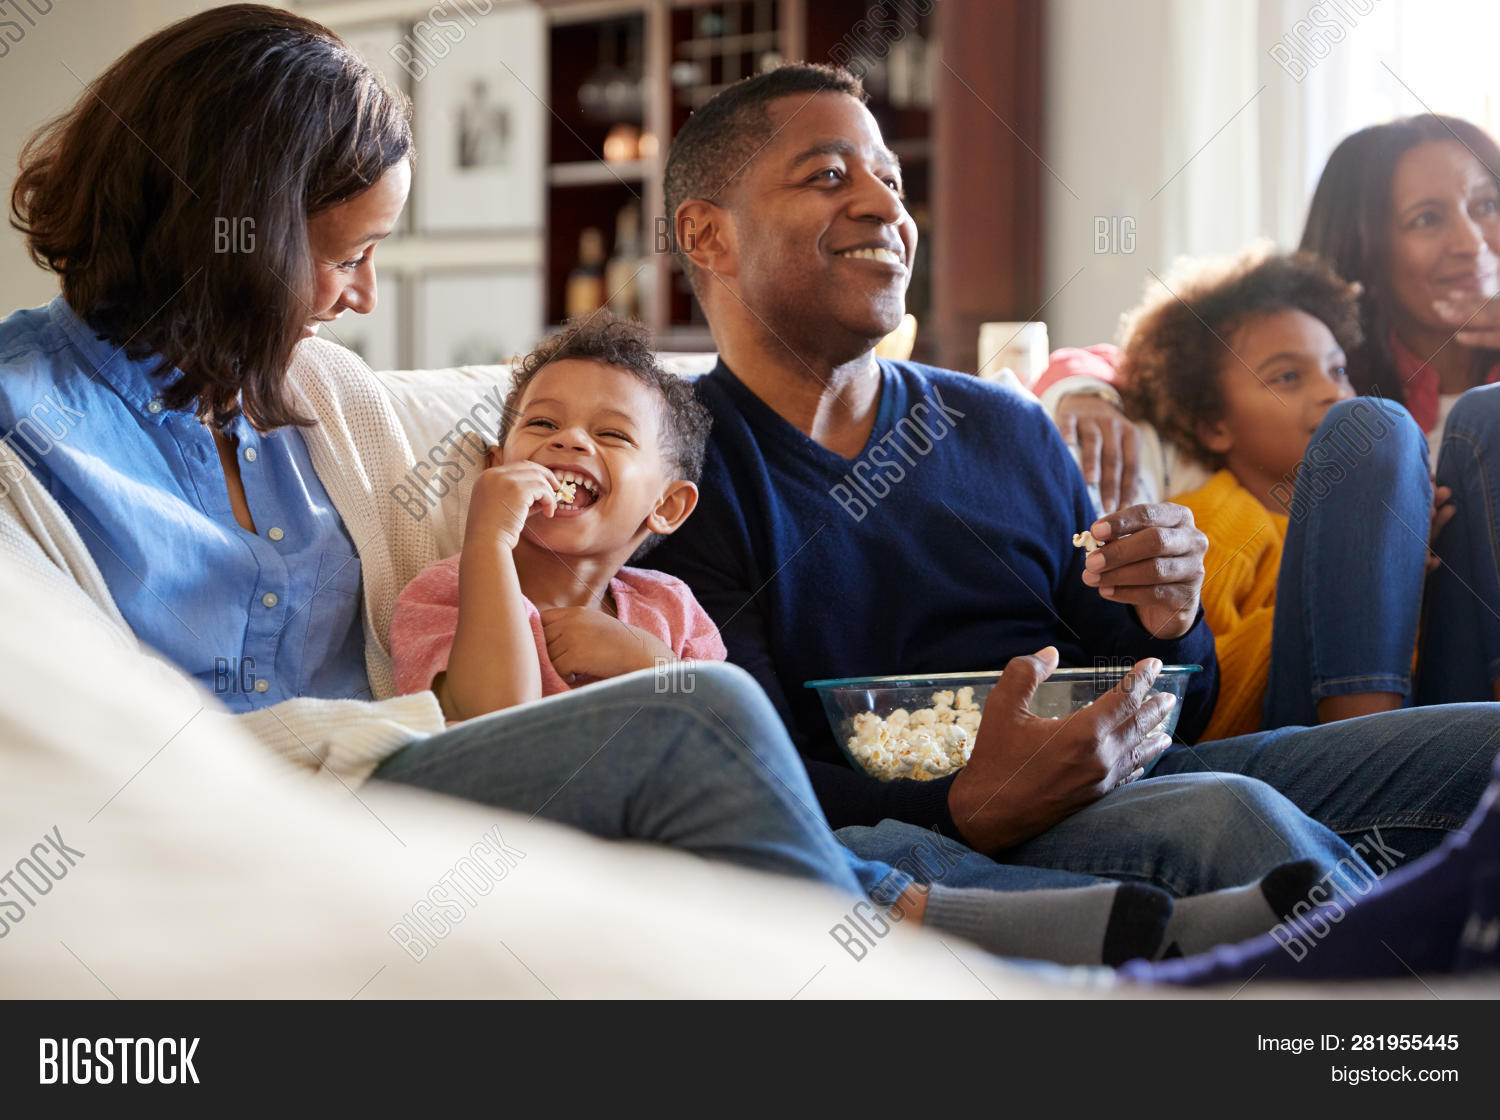 30s,50s,african american ethnicity,black,bonding,boy,brother,childhood,children,close up,copy space,daughter,day,domestic life,eating popcorn,entertainment,five people,free time,girl,grandfather,grandmother,happy,hispanic ethnicity,home,horizontal,indoors,kids,living room,low angle,man,middle aged,millennial,mixed race person,mother,multi-ethnic group,mum,parenthood,parents,pre-teen,selective focus,sister,sitting on sofa,son,three generation family,three quarter length,toddler,togetherness,watching movie,women,young adult